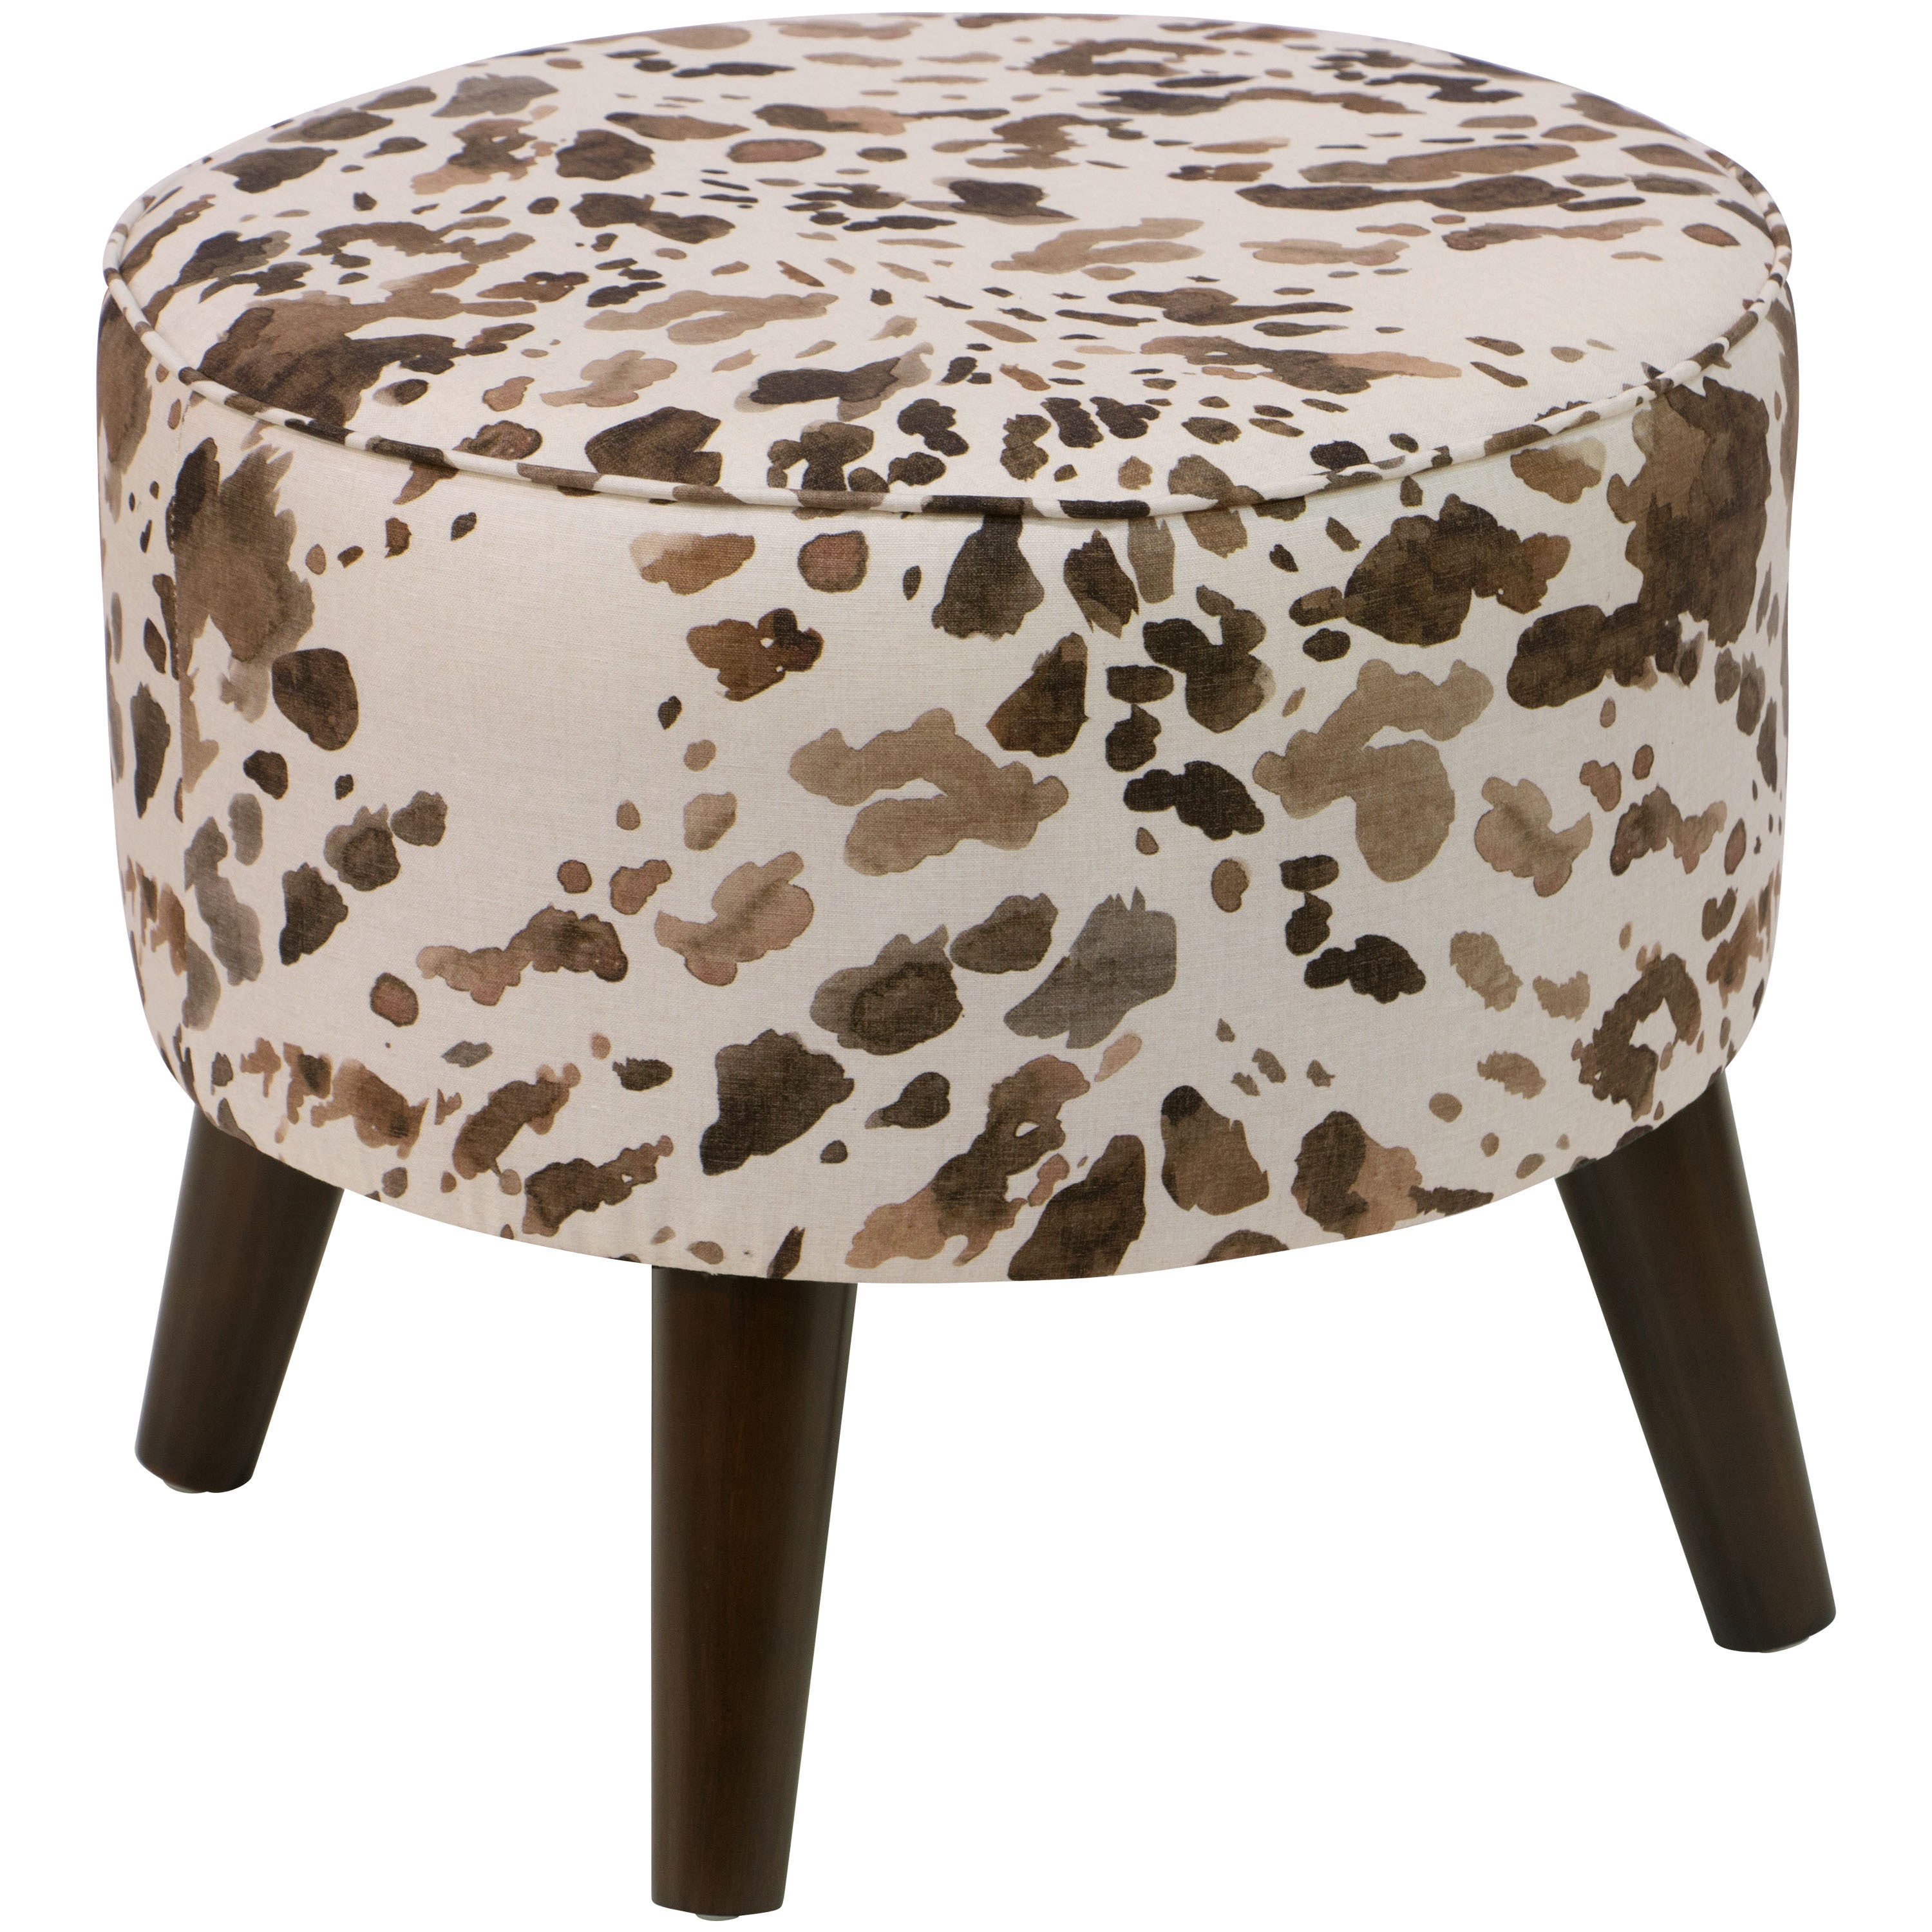 Shop Skyline Furniture Brown Cowhide Print Fabric Ottoman   On Sale   Free  Shipping Today   Overstock.com   13291520